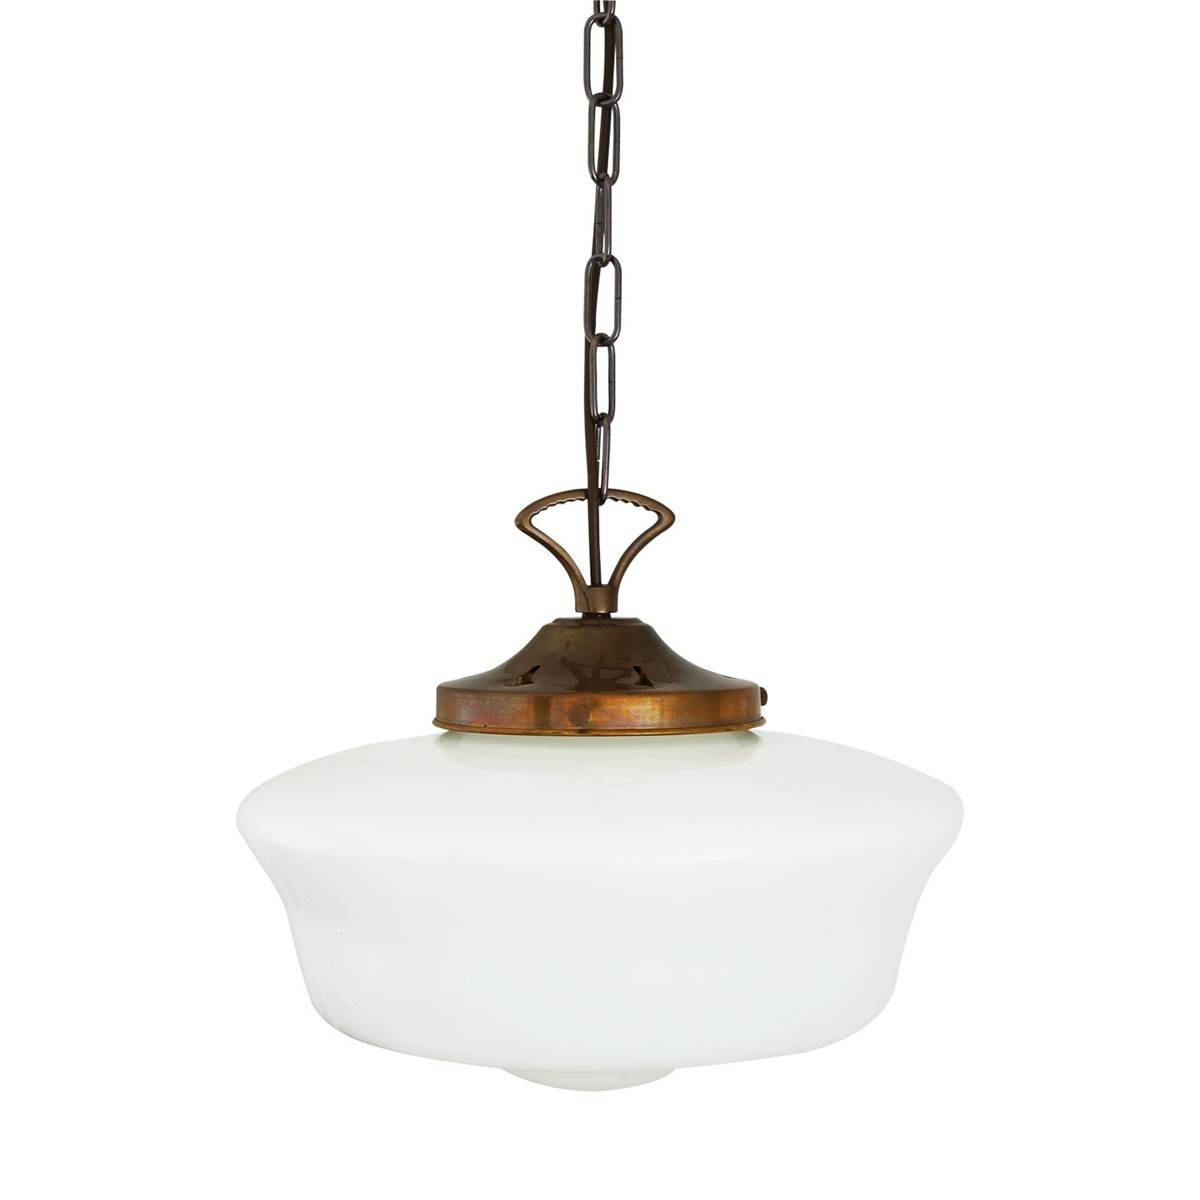 1920's Schoolhouse Pendant Light | Mullan Lighting in Schoolhouse Pendant Lights (Image 4 of 15)